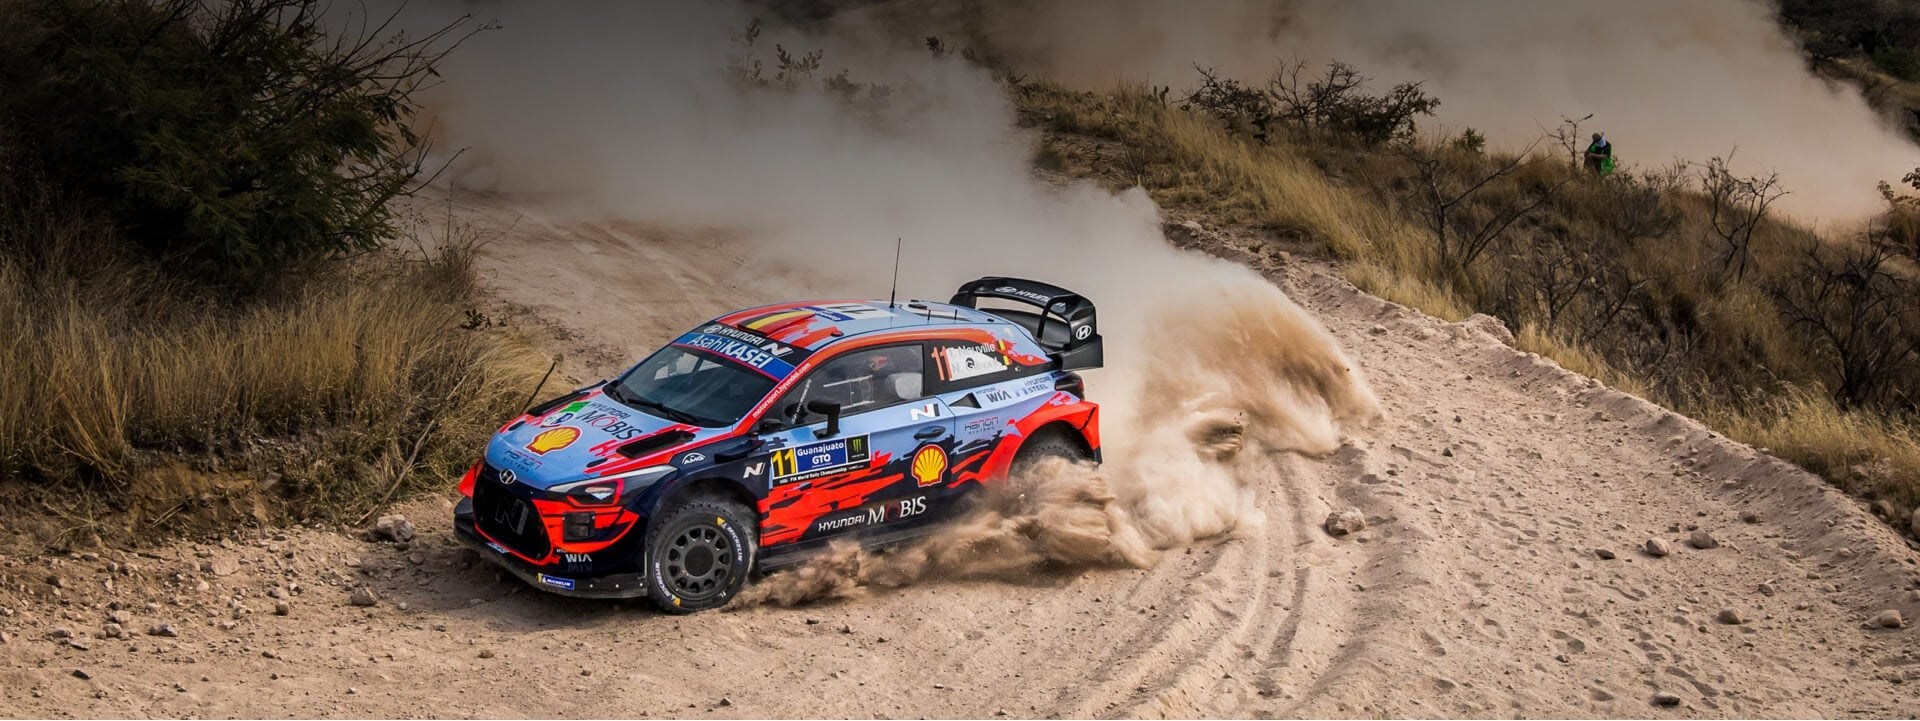 Hyundai_News-Article-Generic_Motorsport_1_desktop_1920x720.jpg